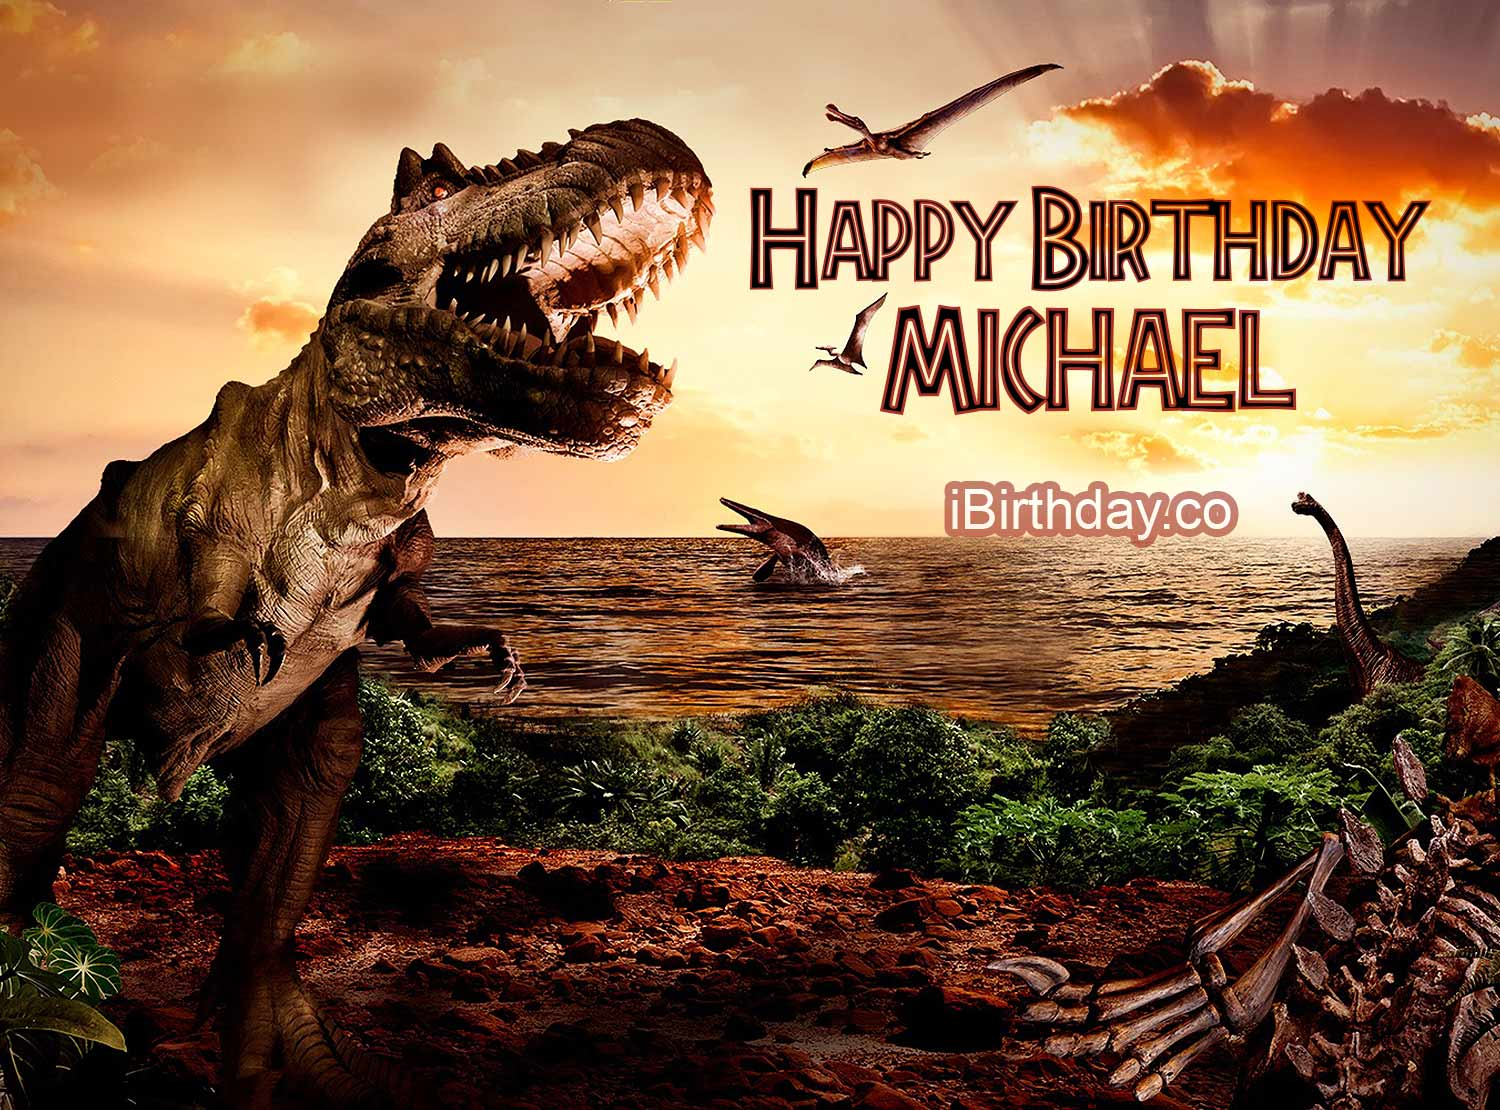 Happy Birthday Michael Jurassic Park